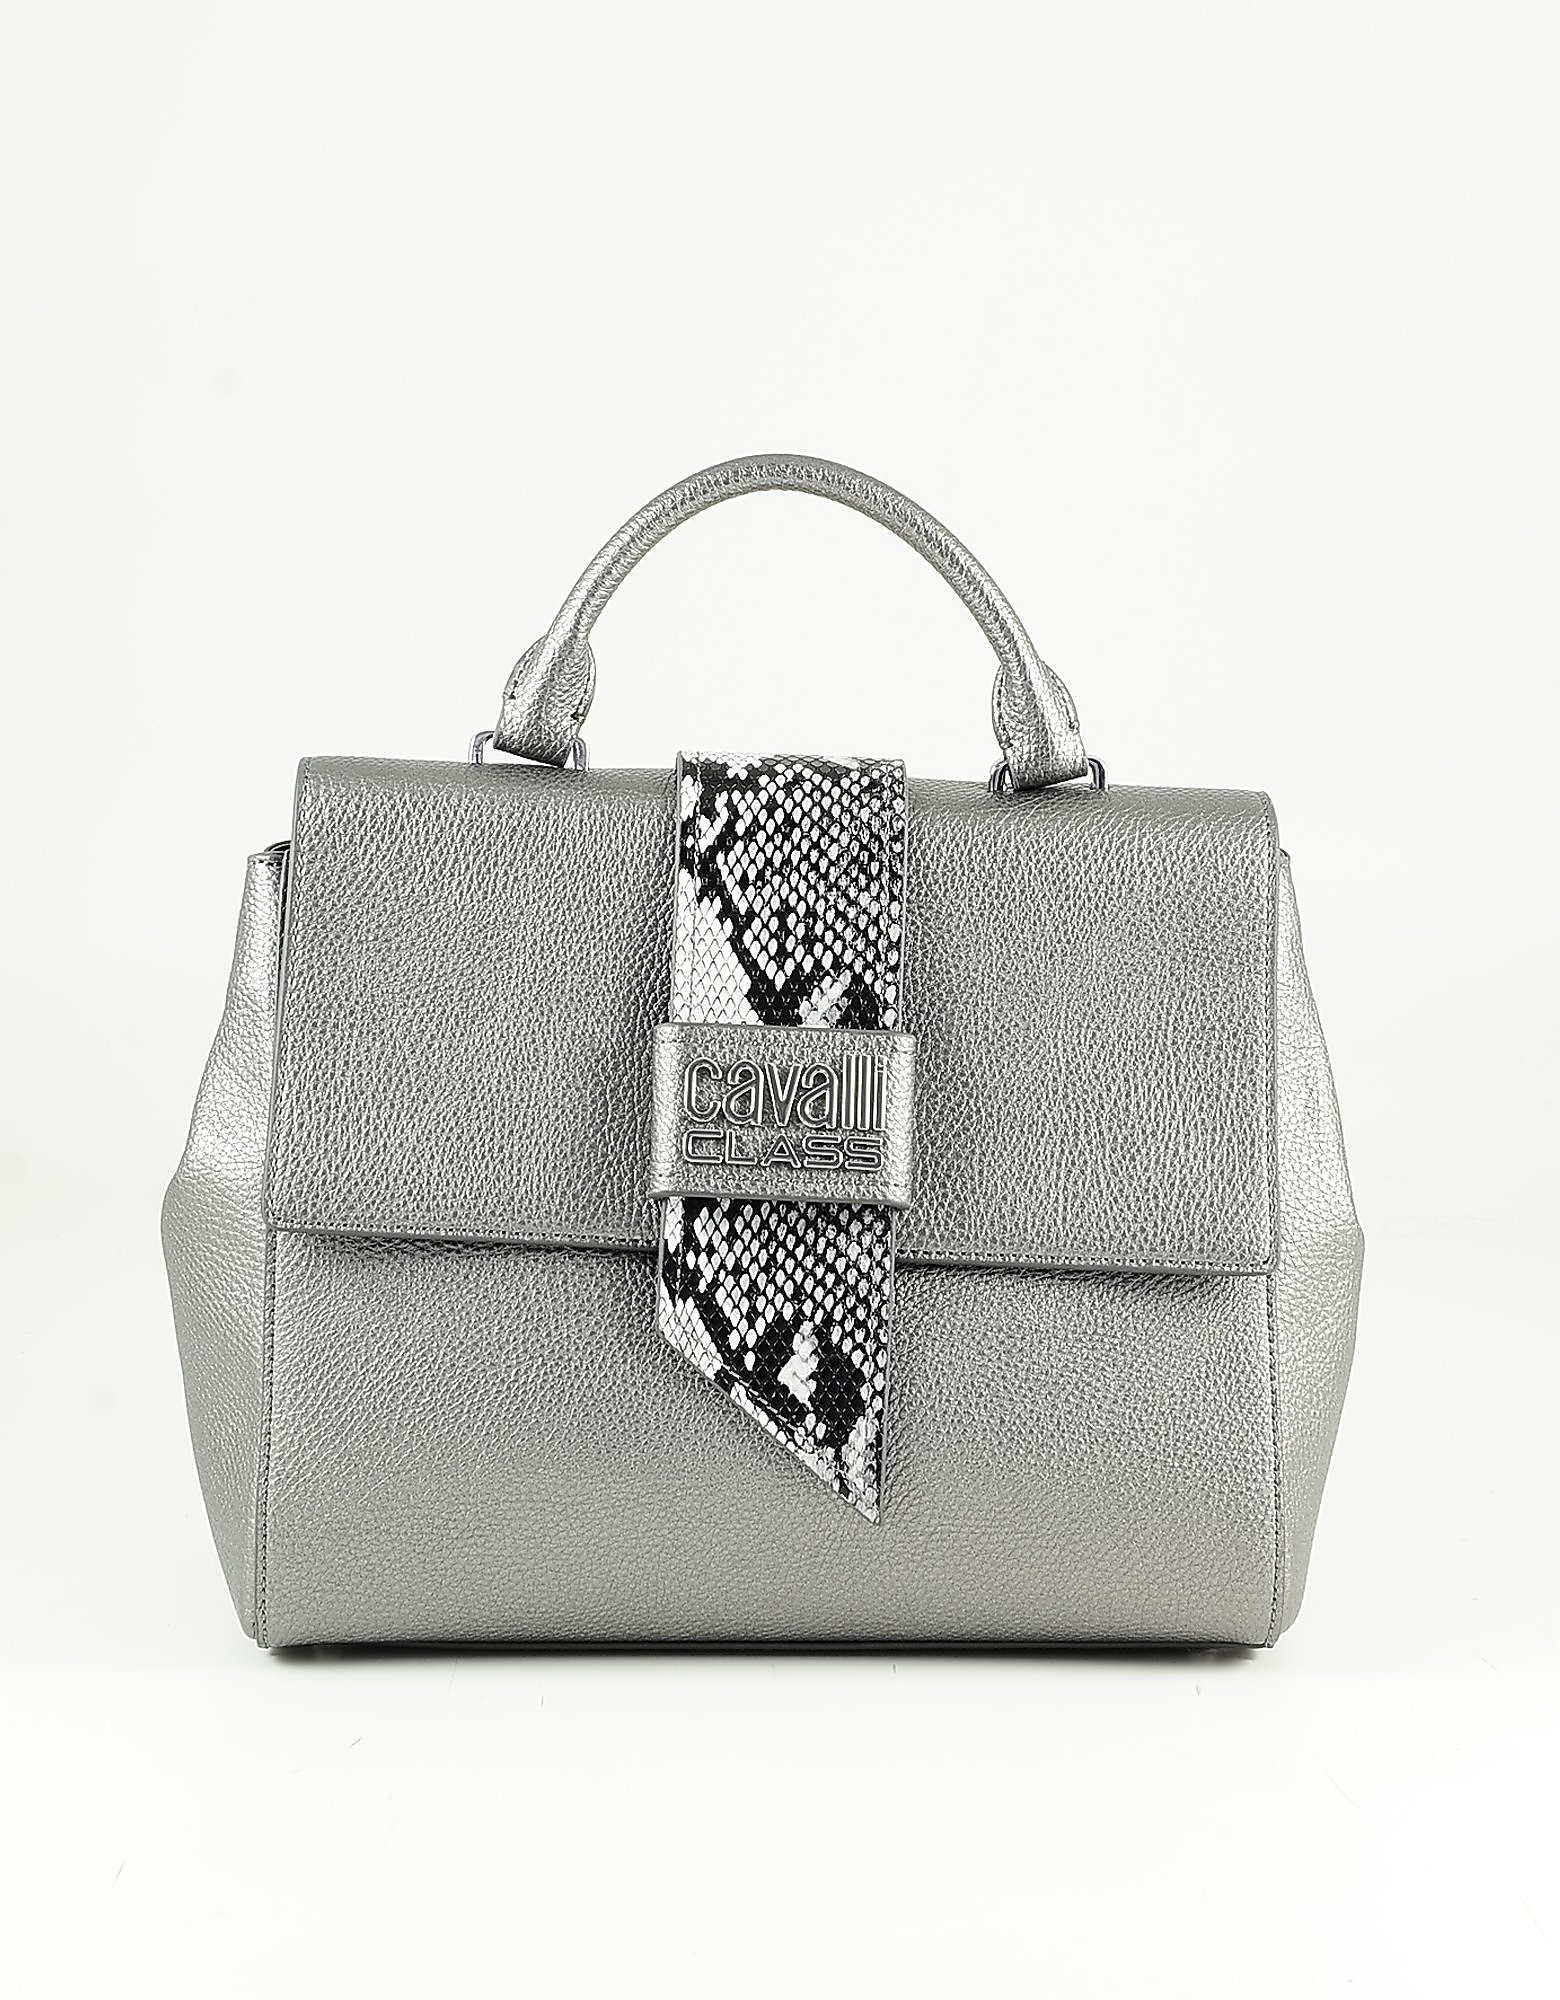 Class Roberto Cavalli Metallic Anthracite Top Handle Small Satchel Bag In Gray